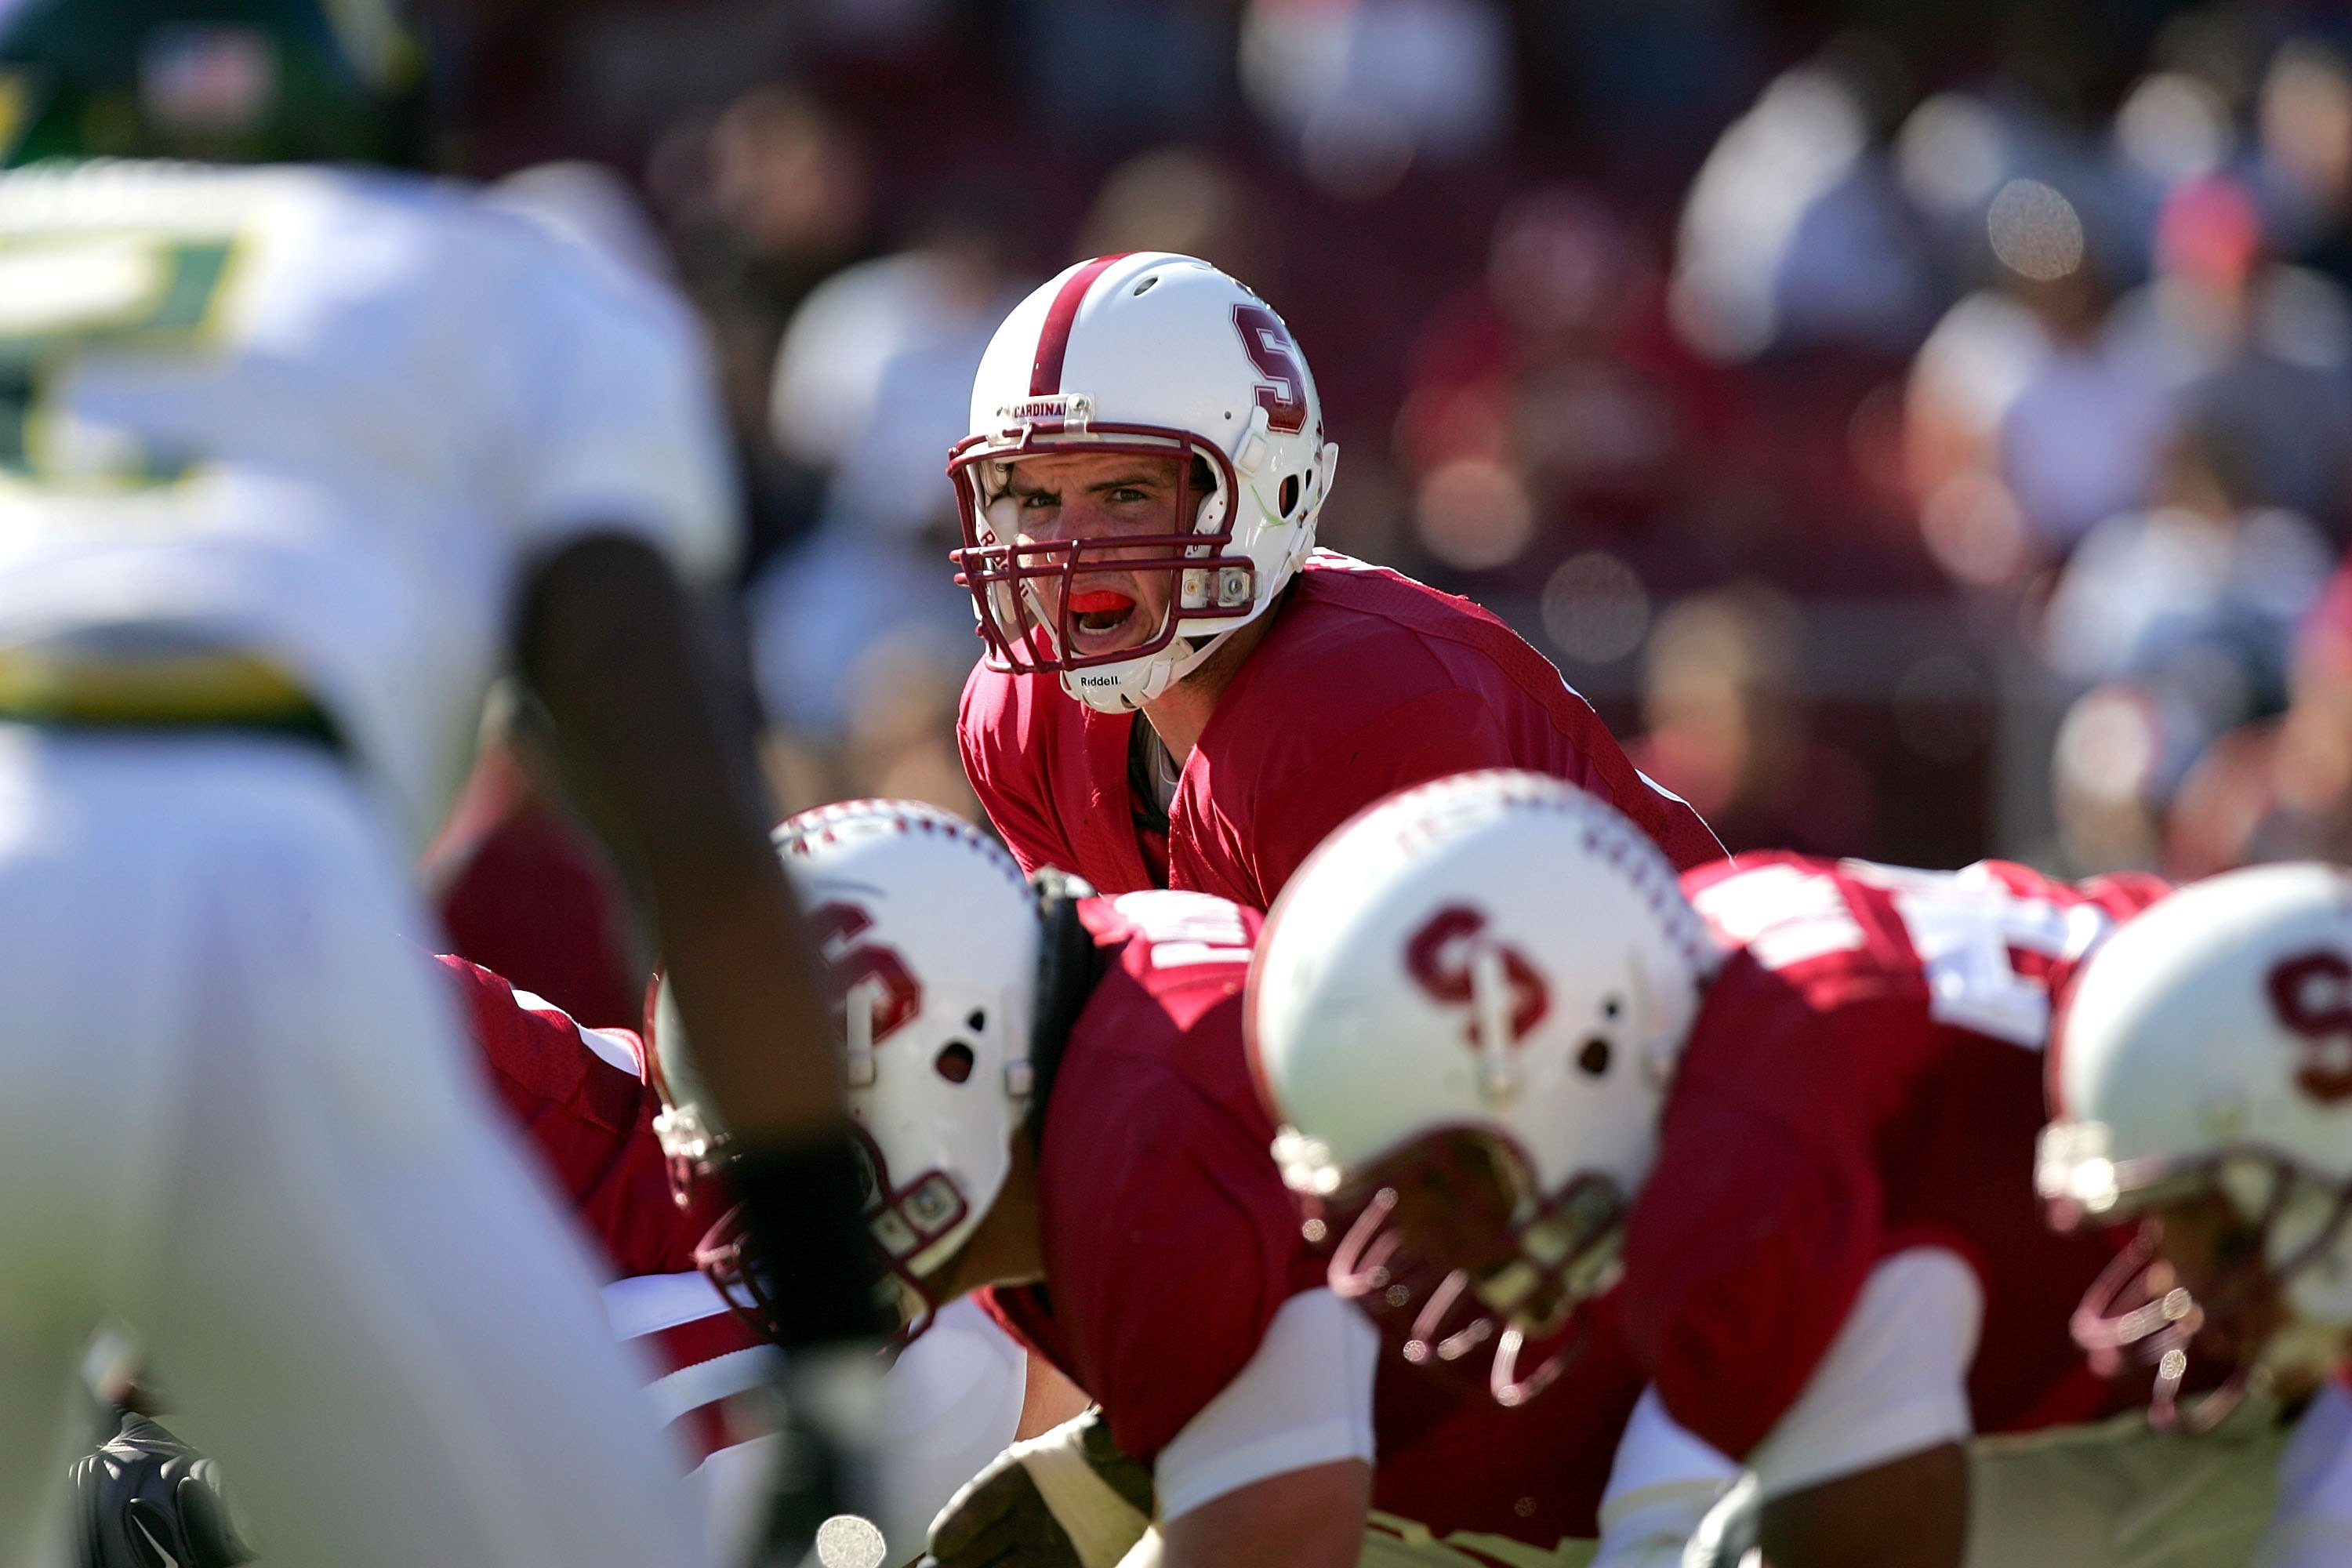 PALO ALTO, CA - NOVEMBER 07:  Andrew Luck #12 of the Stanford Cardinal shouts out instructions to his team during their game against the Oregon Ducks at Stanford Stadium on November 7, 2009 in Palo Alto, California.  (Photo by Ezra Shaw/Getty Images)